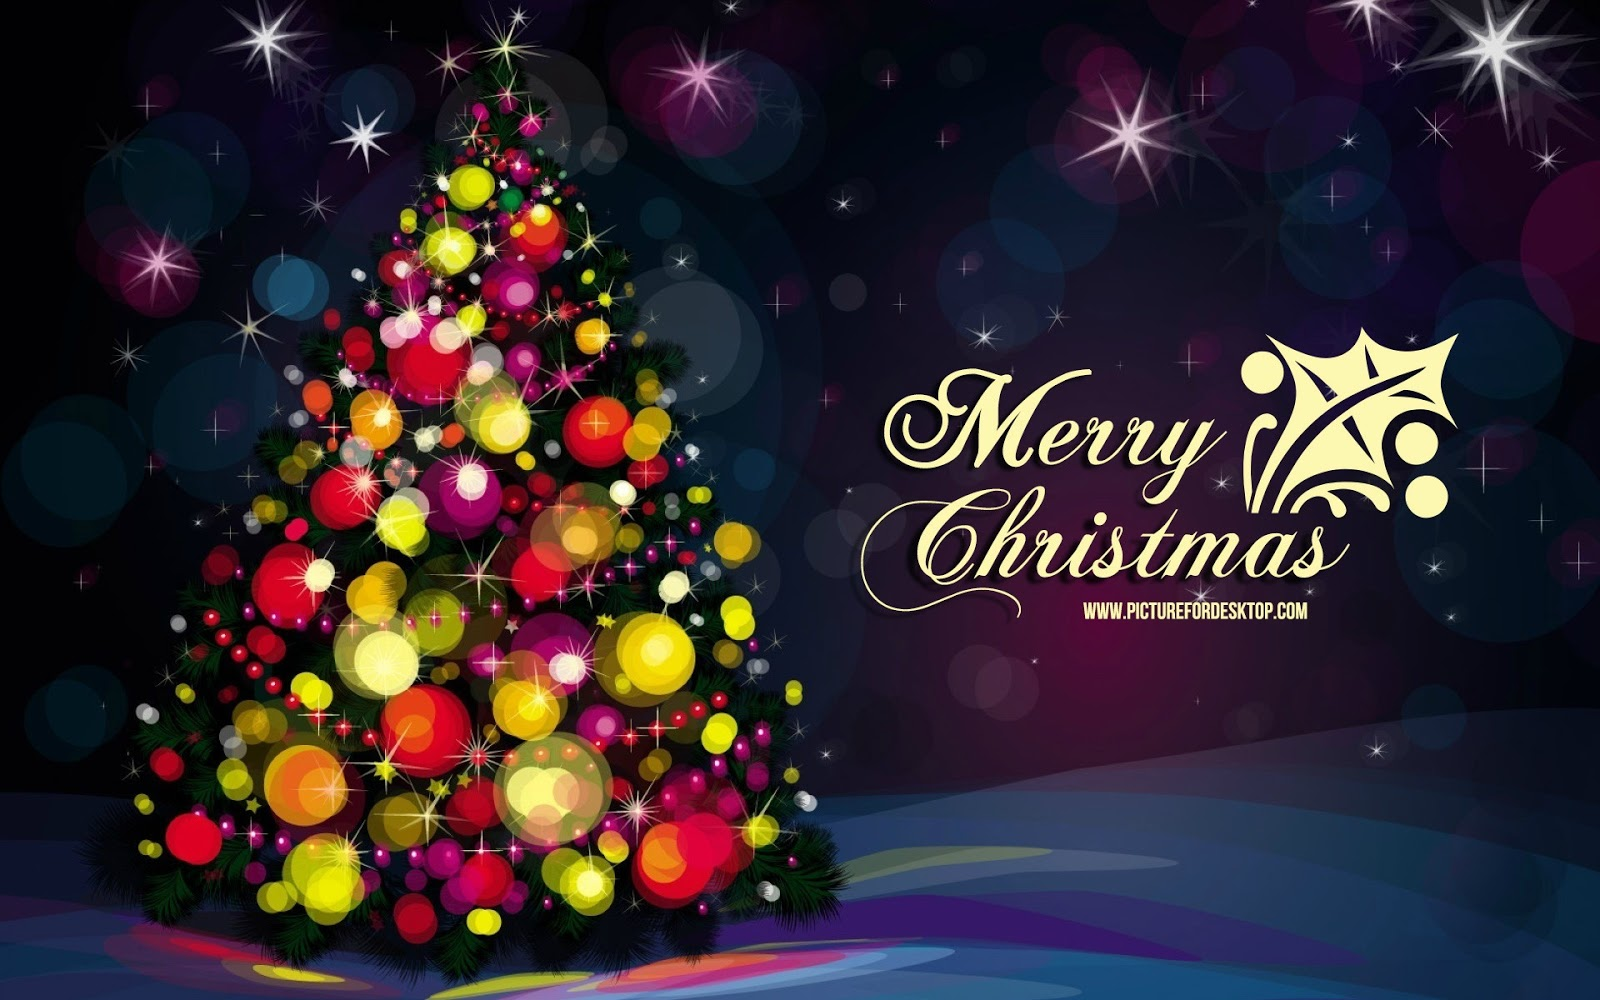 Merry Christmas HD Images Wallpapers Pictures For Facebook ...